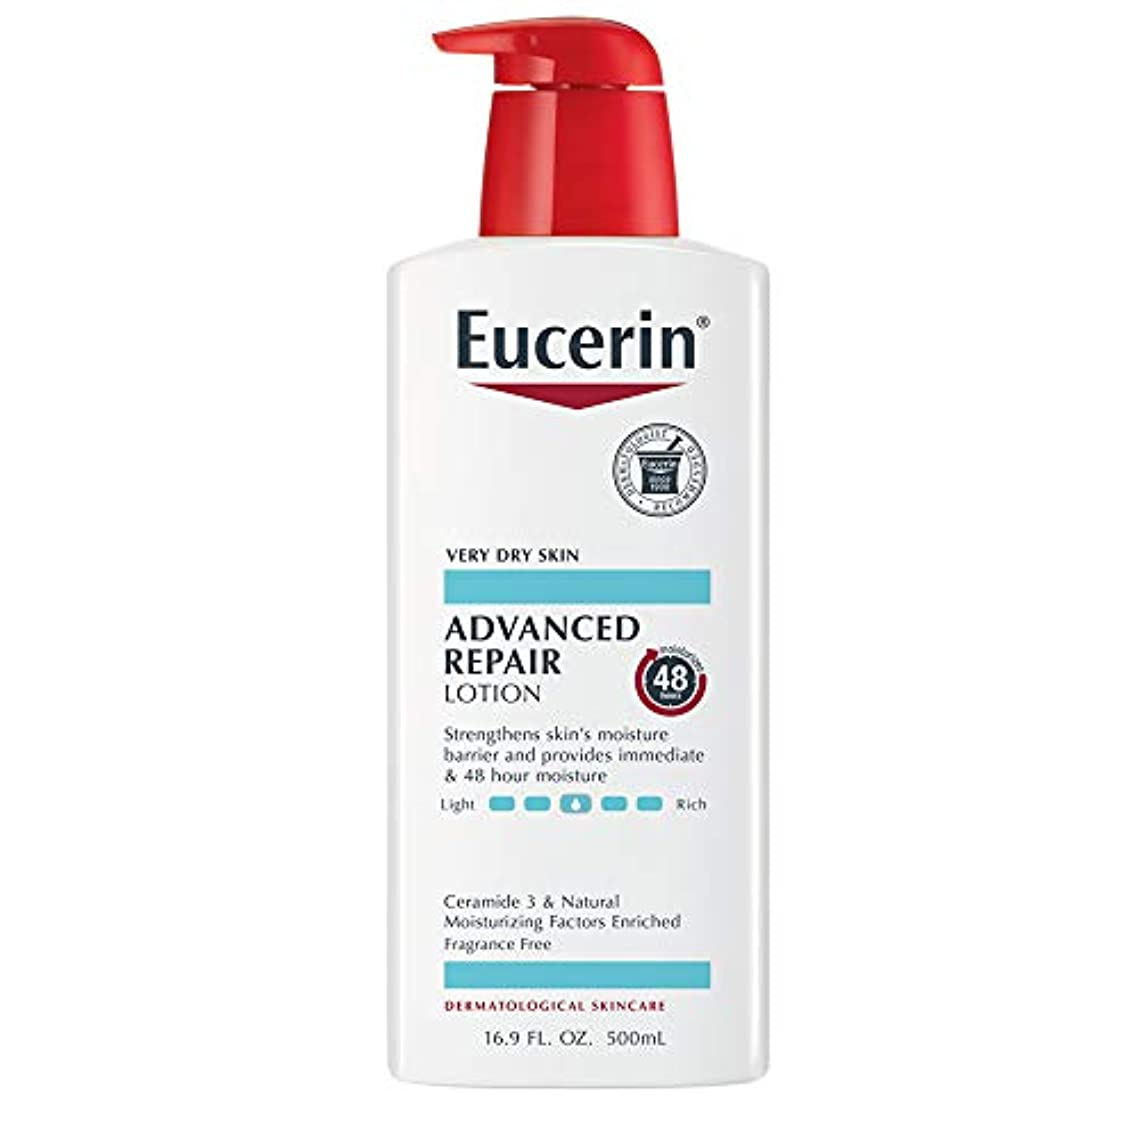 周波数逆さまに混乱させるEucerin Plus Smoothing Essentials Fast Absorbing Lotion 500 ml (並行輸入品)